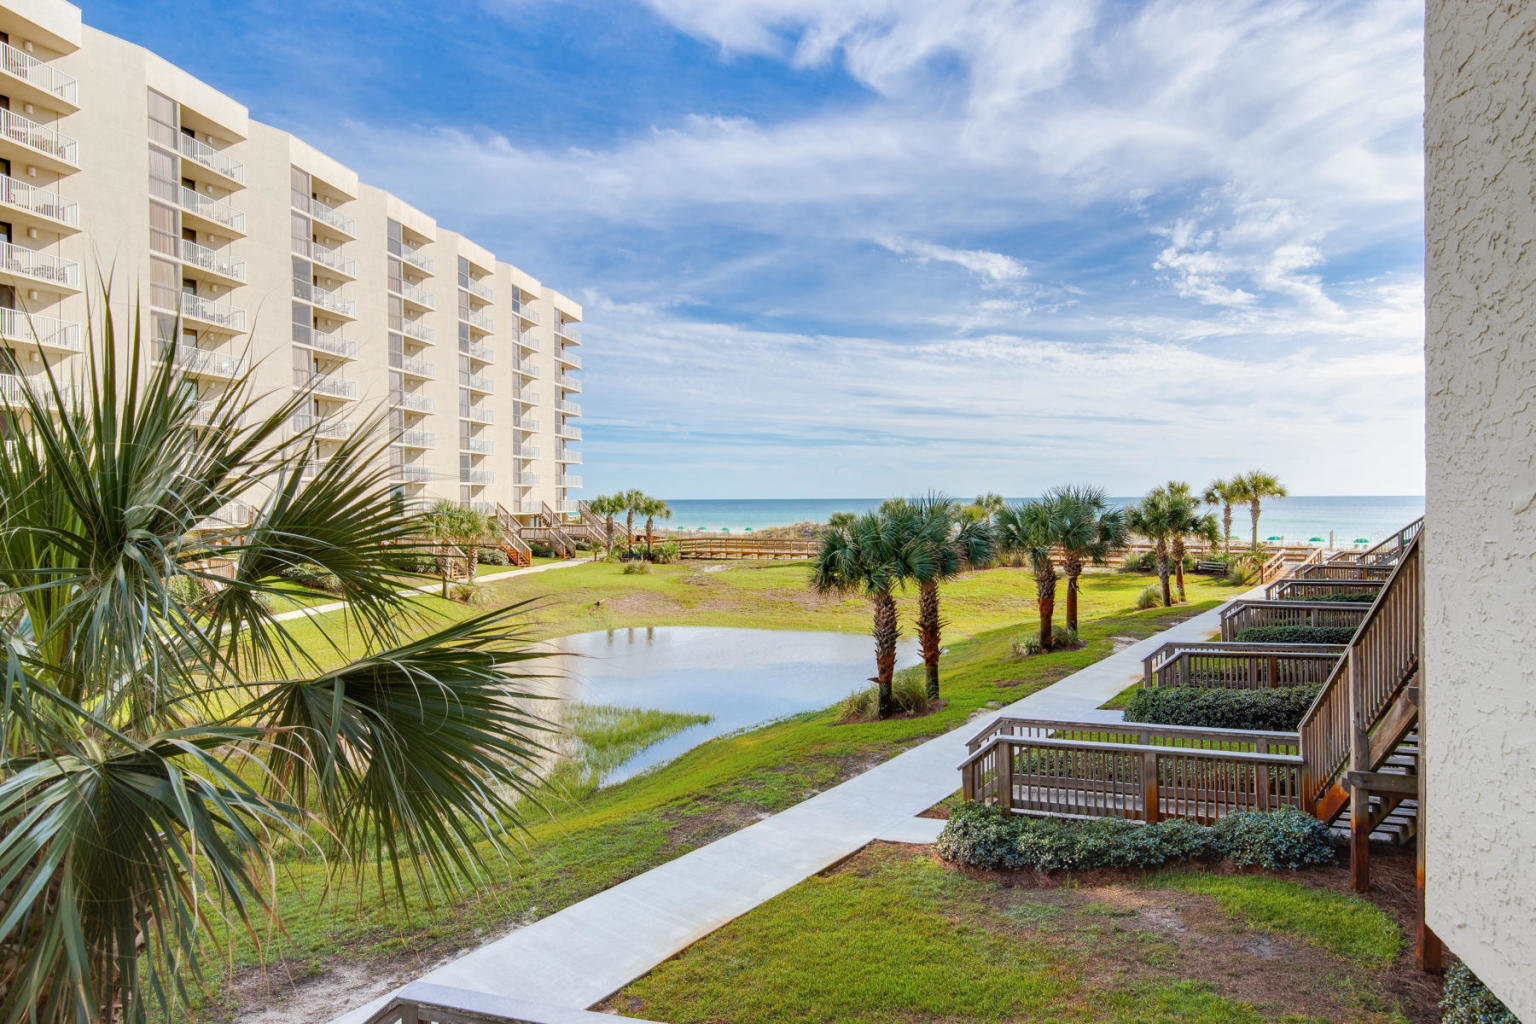 Mainsail condo Gulf view